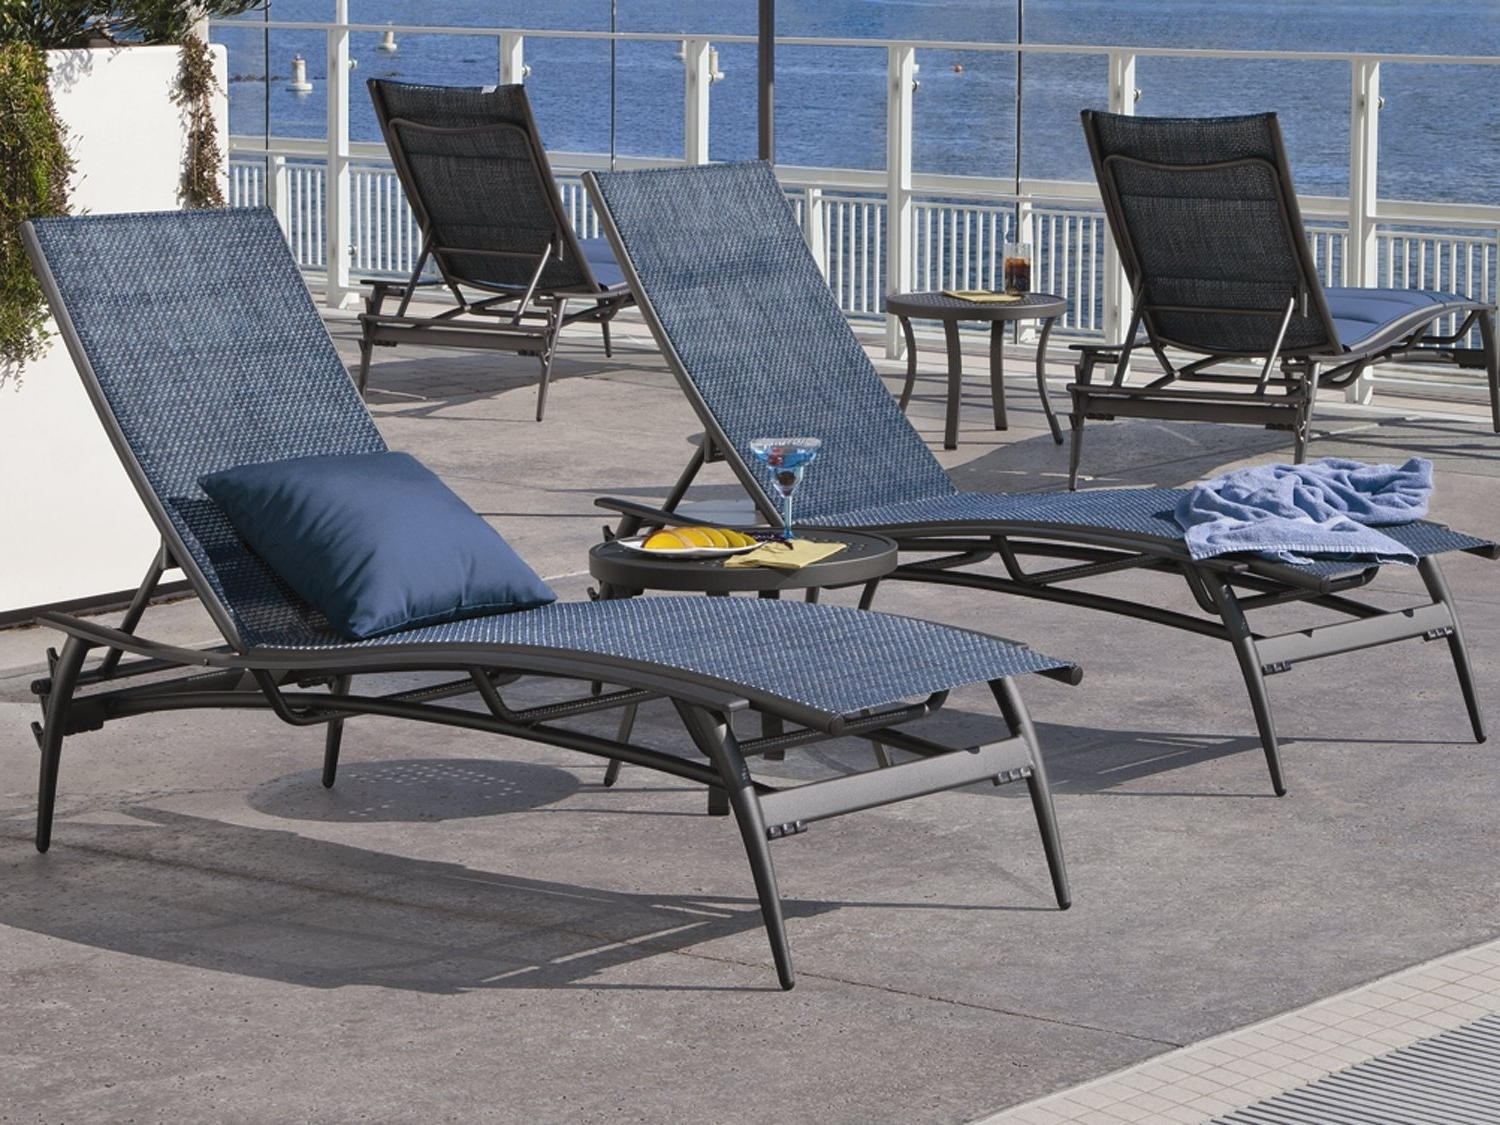 Tropitone Regarding Widely Used Tropitone Chaise Lounges (View 3 of 15)